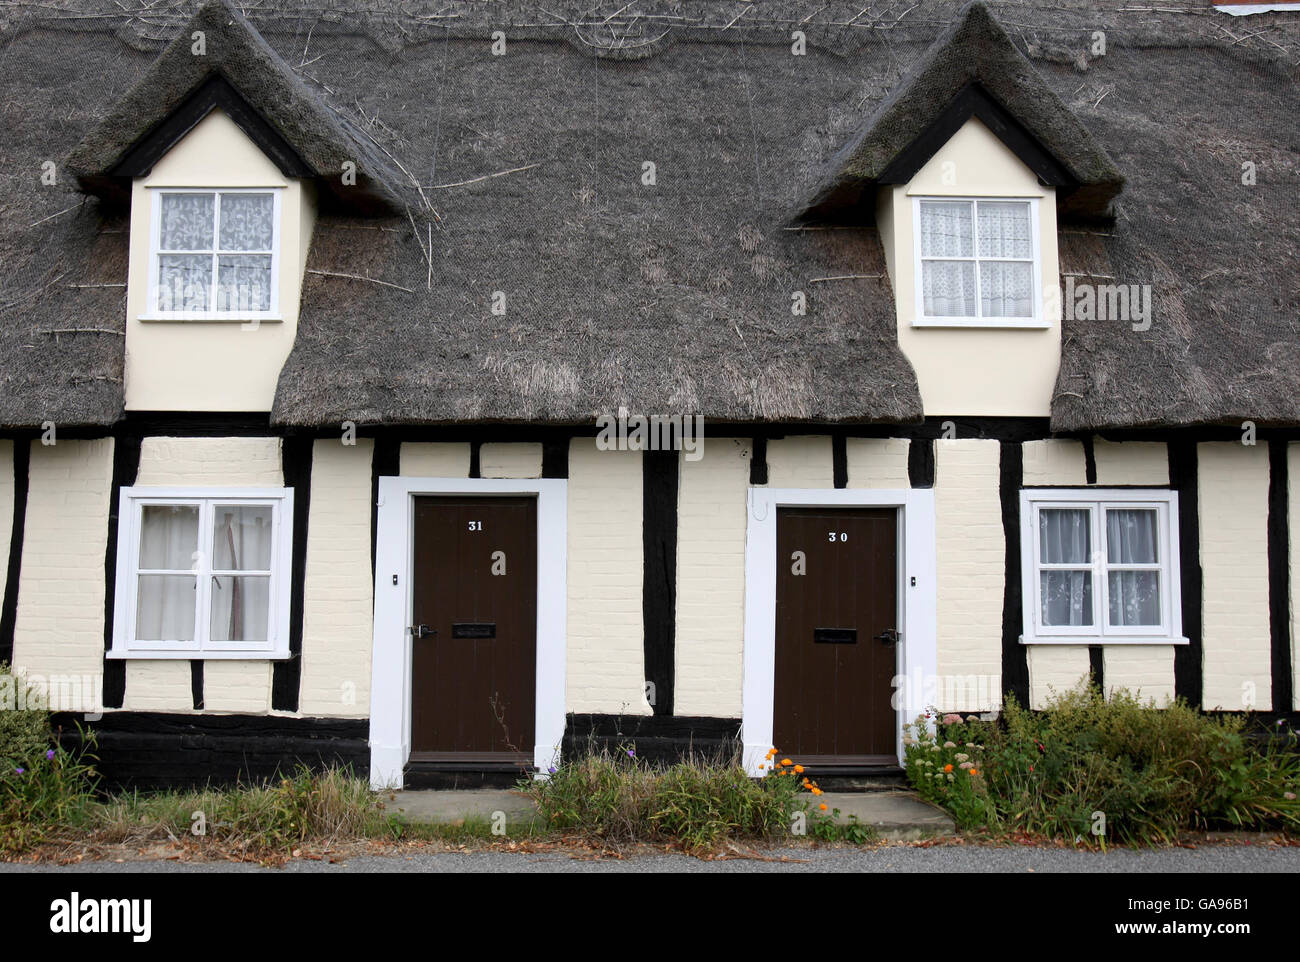 Oldest council houses in the country to be sold off - Stock Image